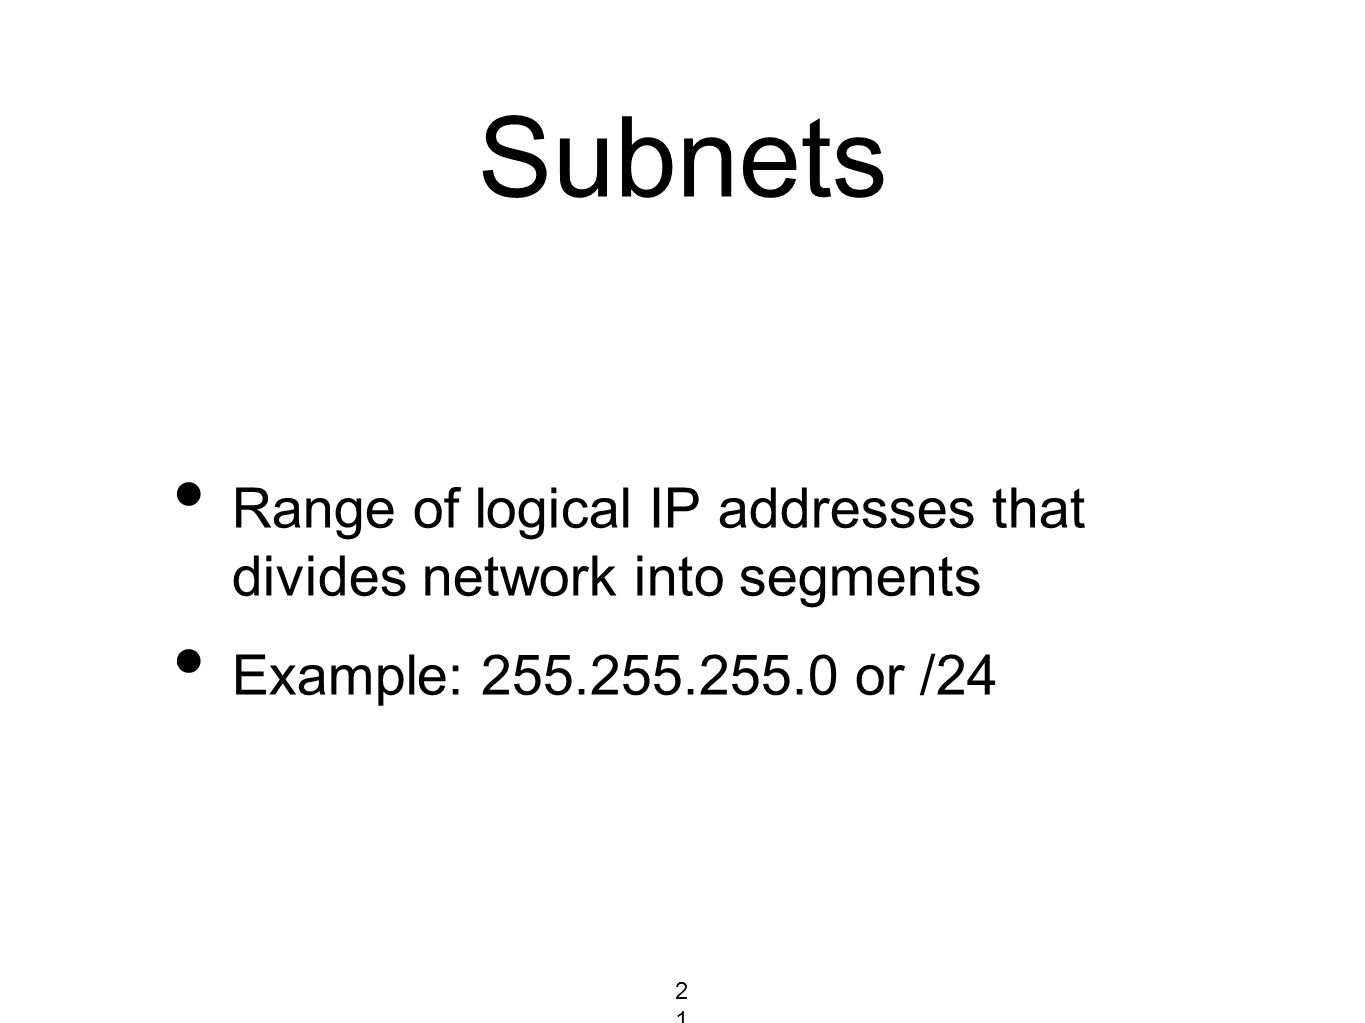 Subnets Range of logical IP addresses that divides network into segments Example: 255.255.255.0 or /24 21